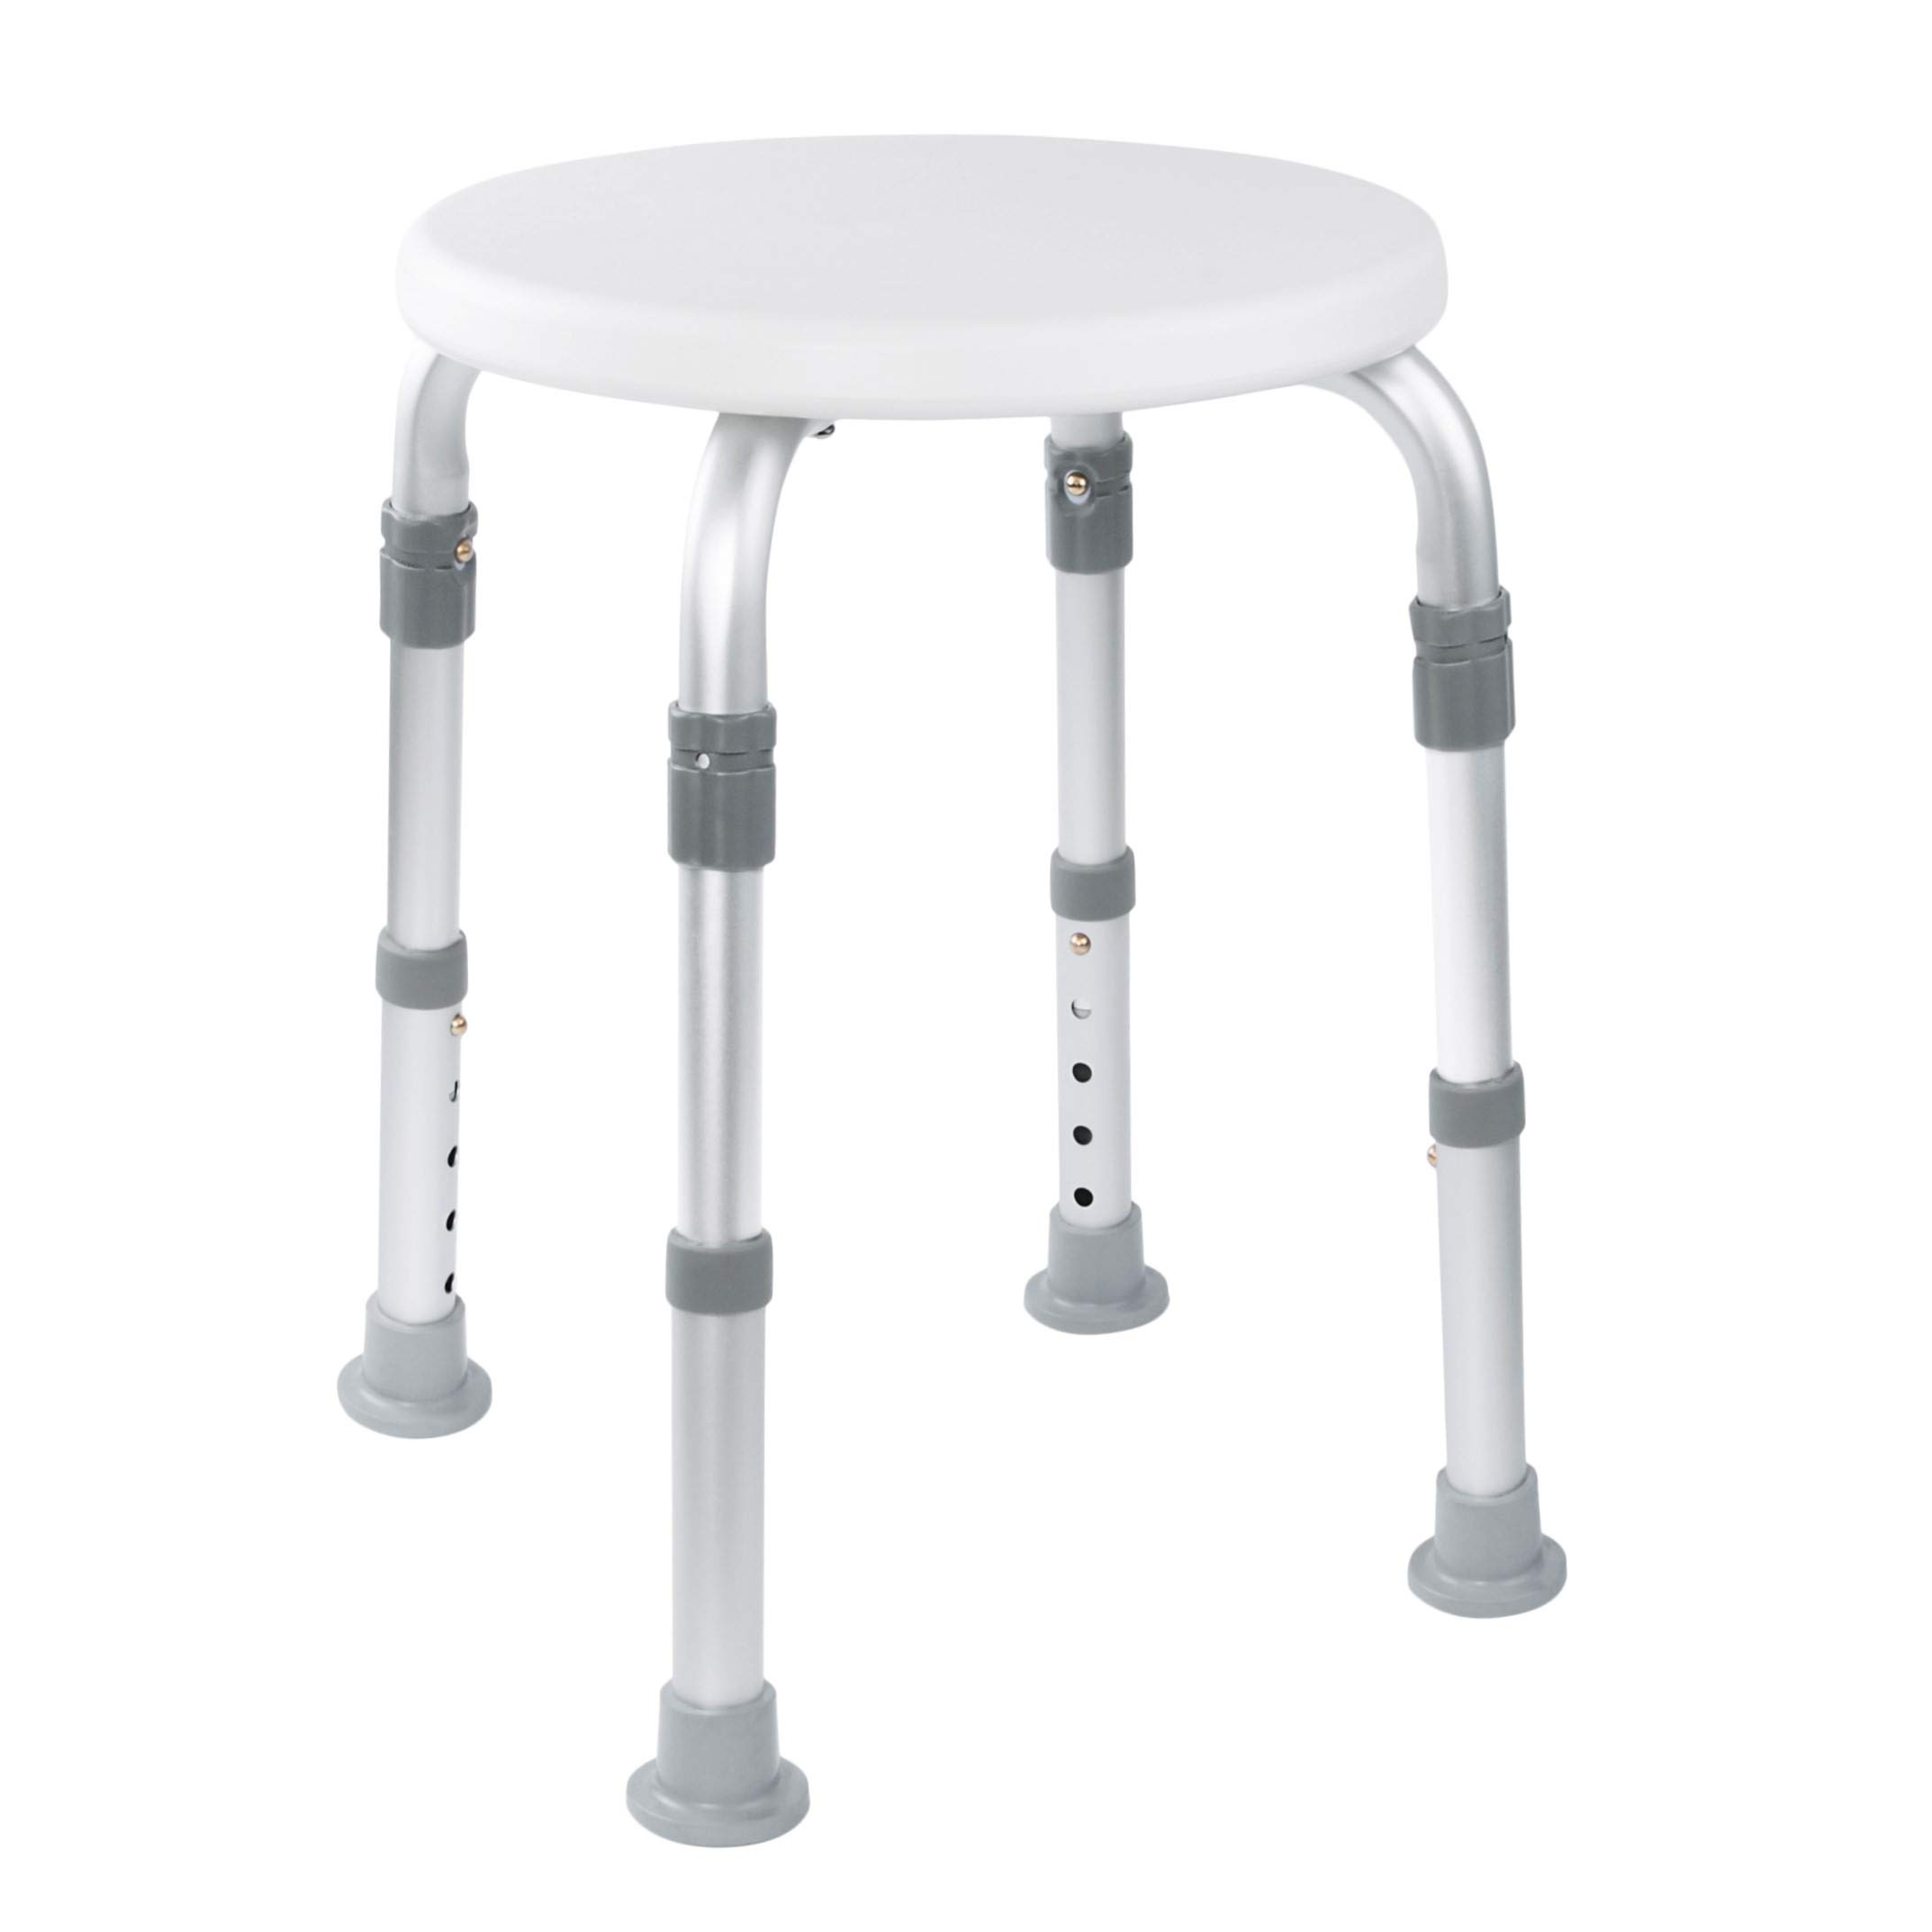 Medical Tool-Free Assembly Adjustable Shower Stool Tub Chair and Bathtub Seat Bench with Anti-Slip Rubber Tips for Safety and Stability